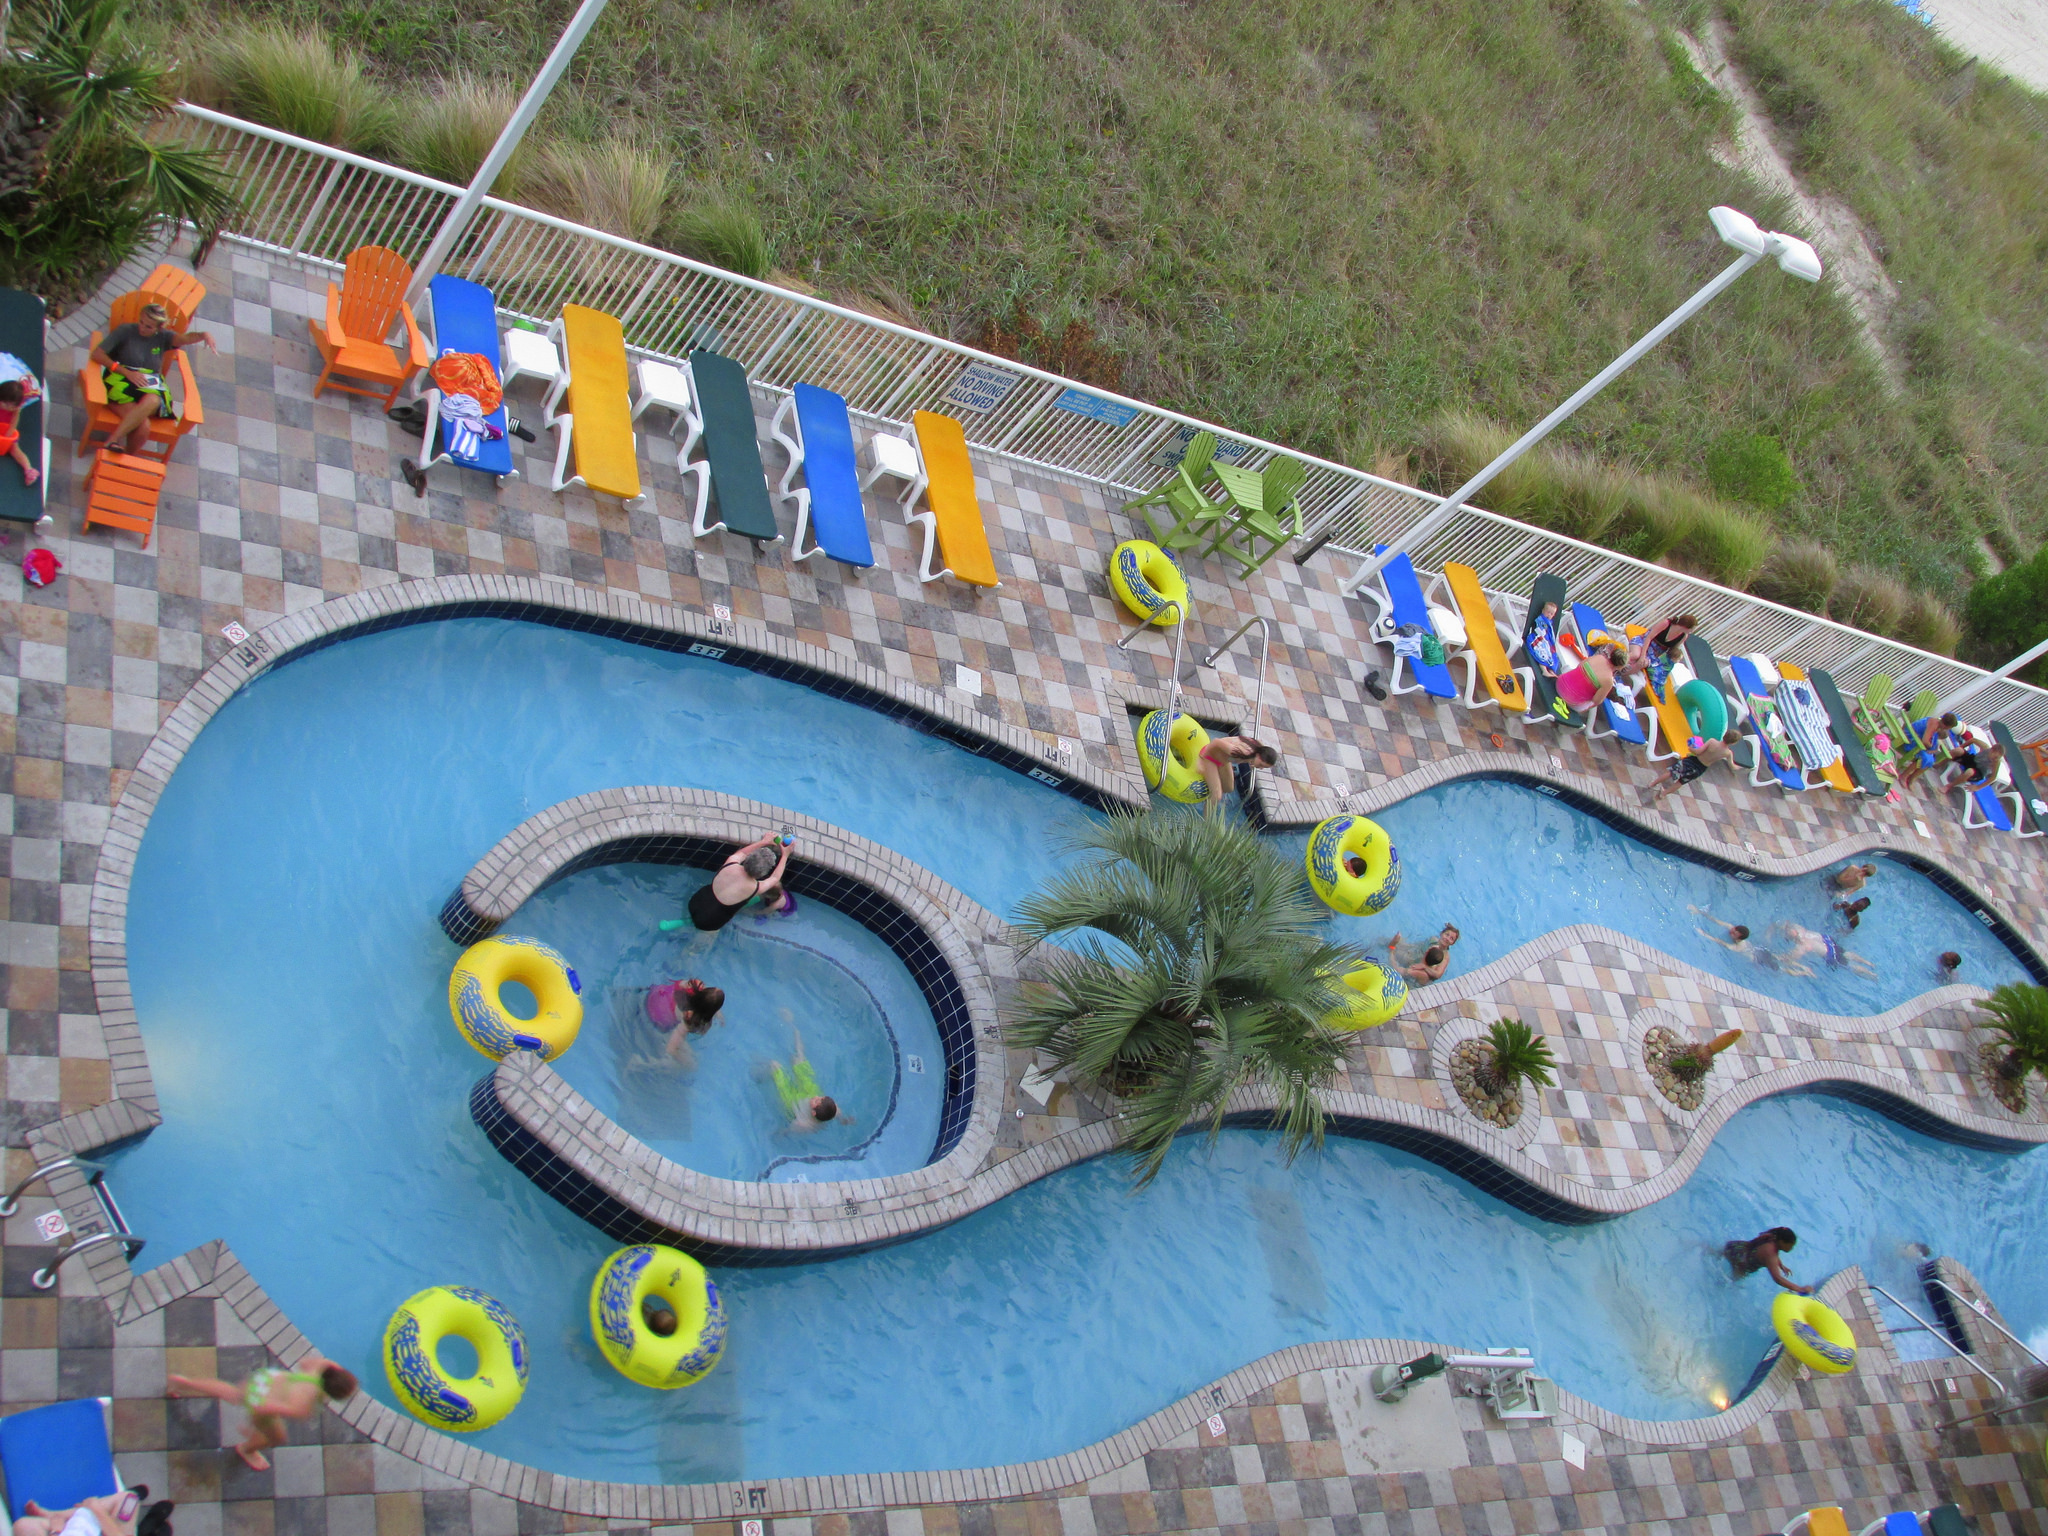 """Lazy River from Hotel Balcony, MB, 21 June 2014"" by Mwms1916 via Flickr Creative Commons"